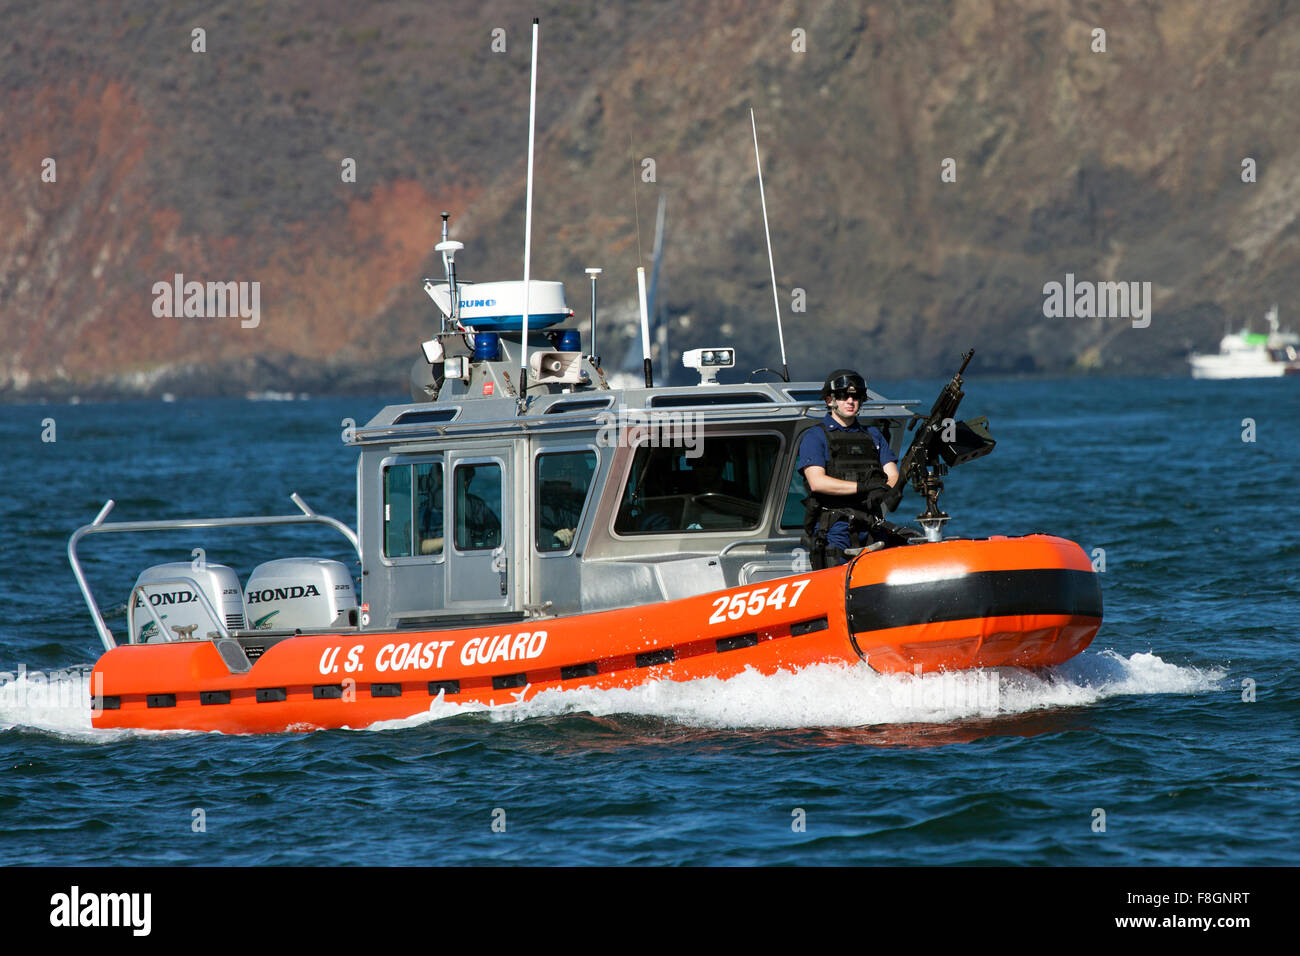 Defender Class Response Boat (RB-S). The RB-S was designed as a homeland security and law enforcement platform to - Stock Image